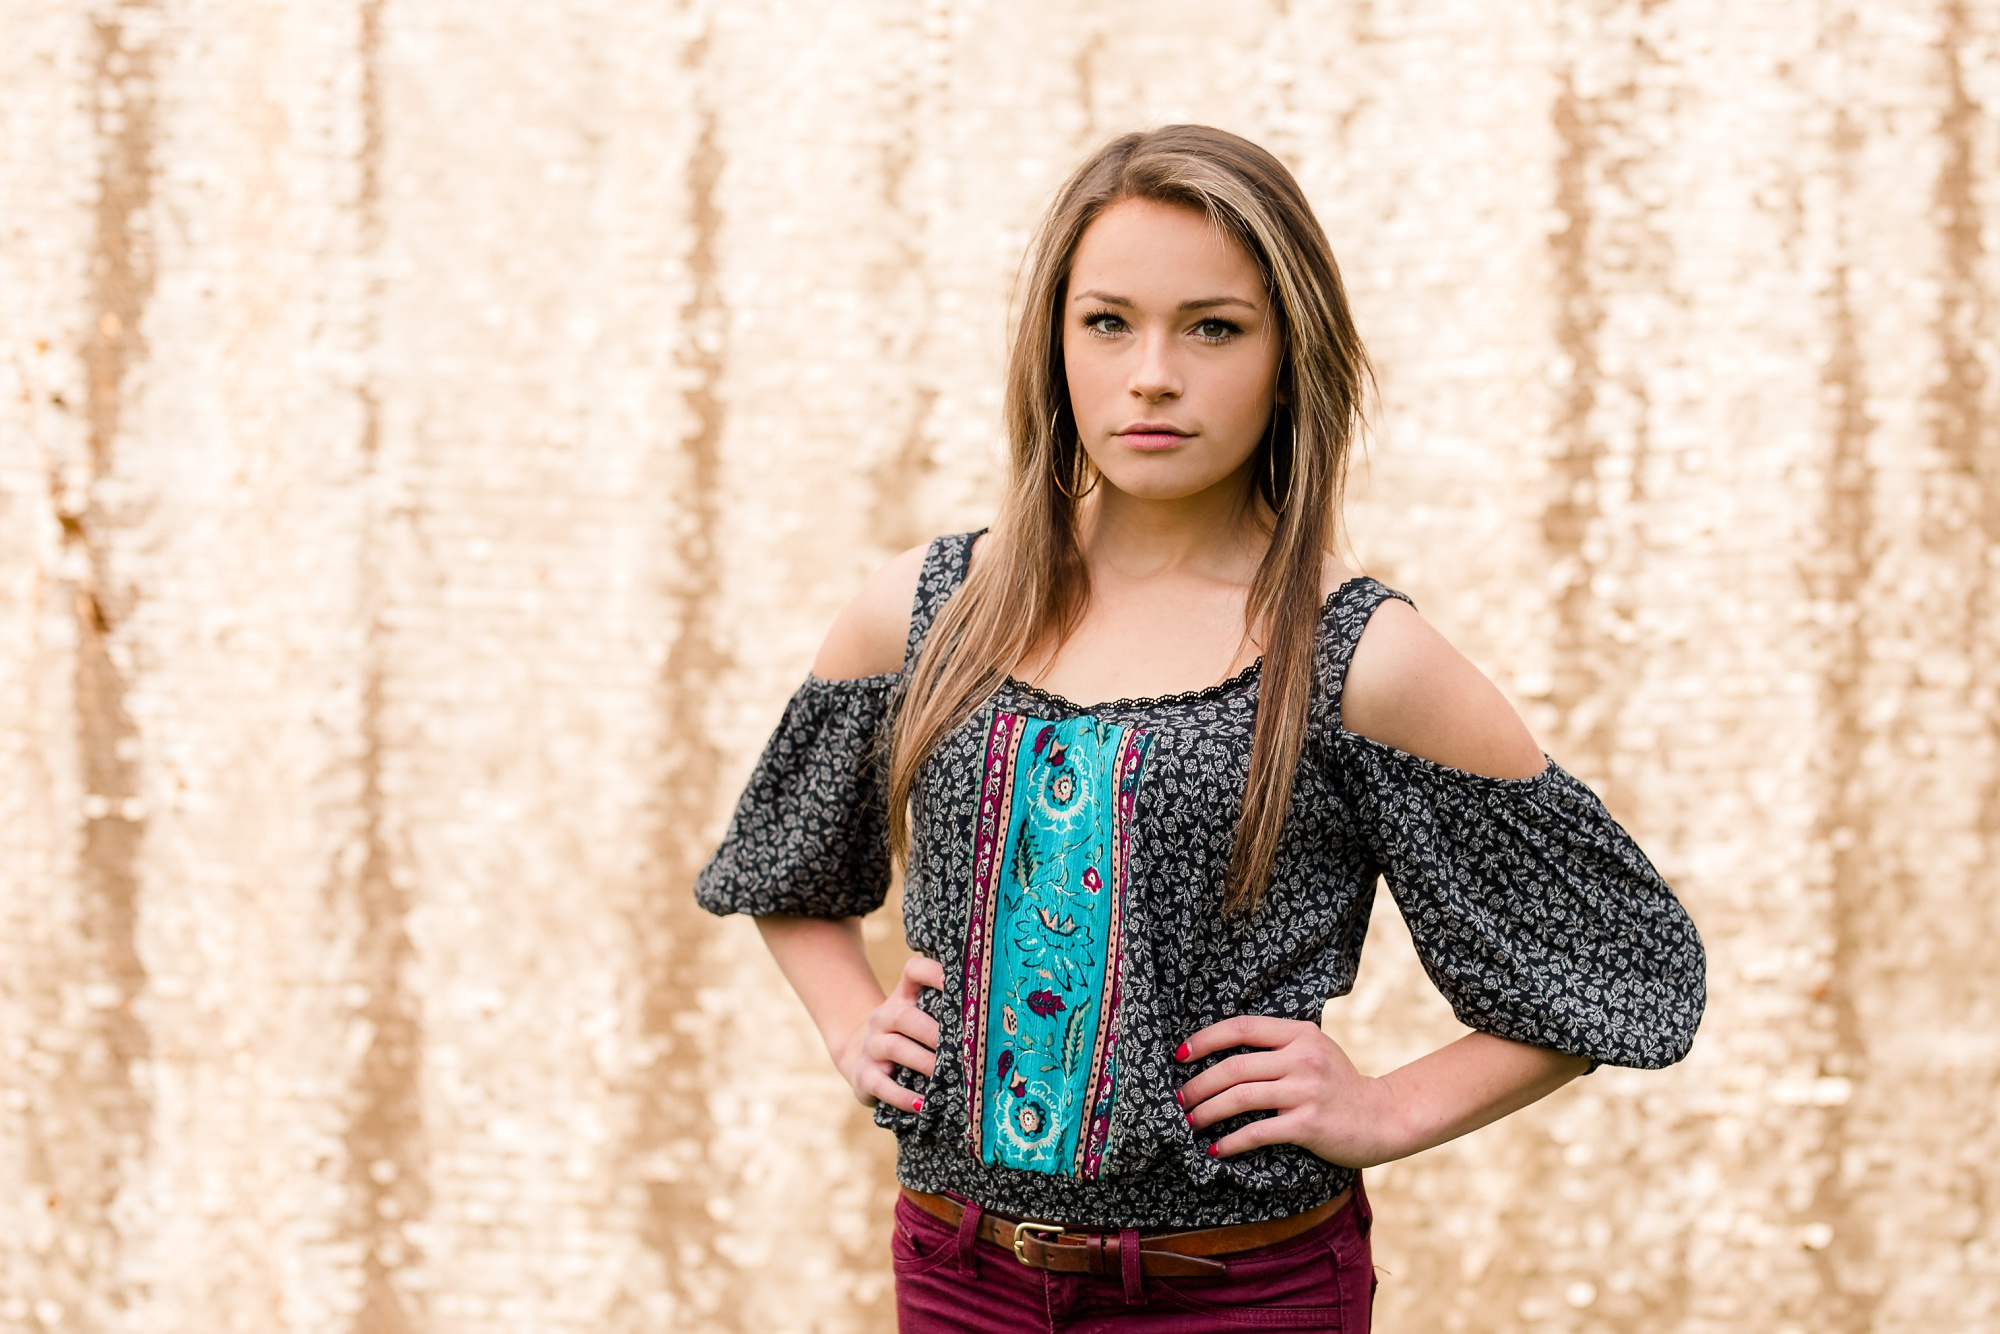 Country & Gold Sequin Backdrop Styled Senior Session near Audubon, MN by Amber Langerud Photography   Anna Donner